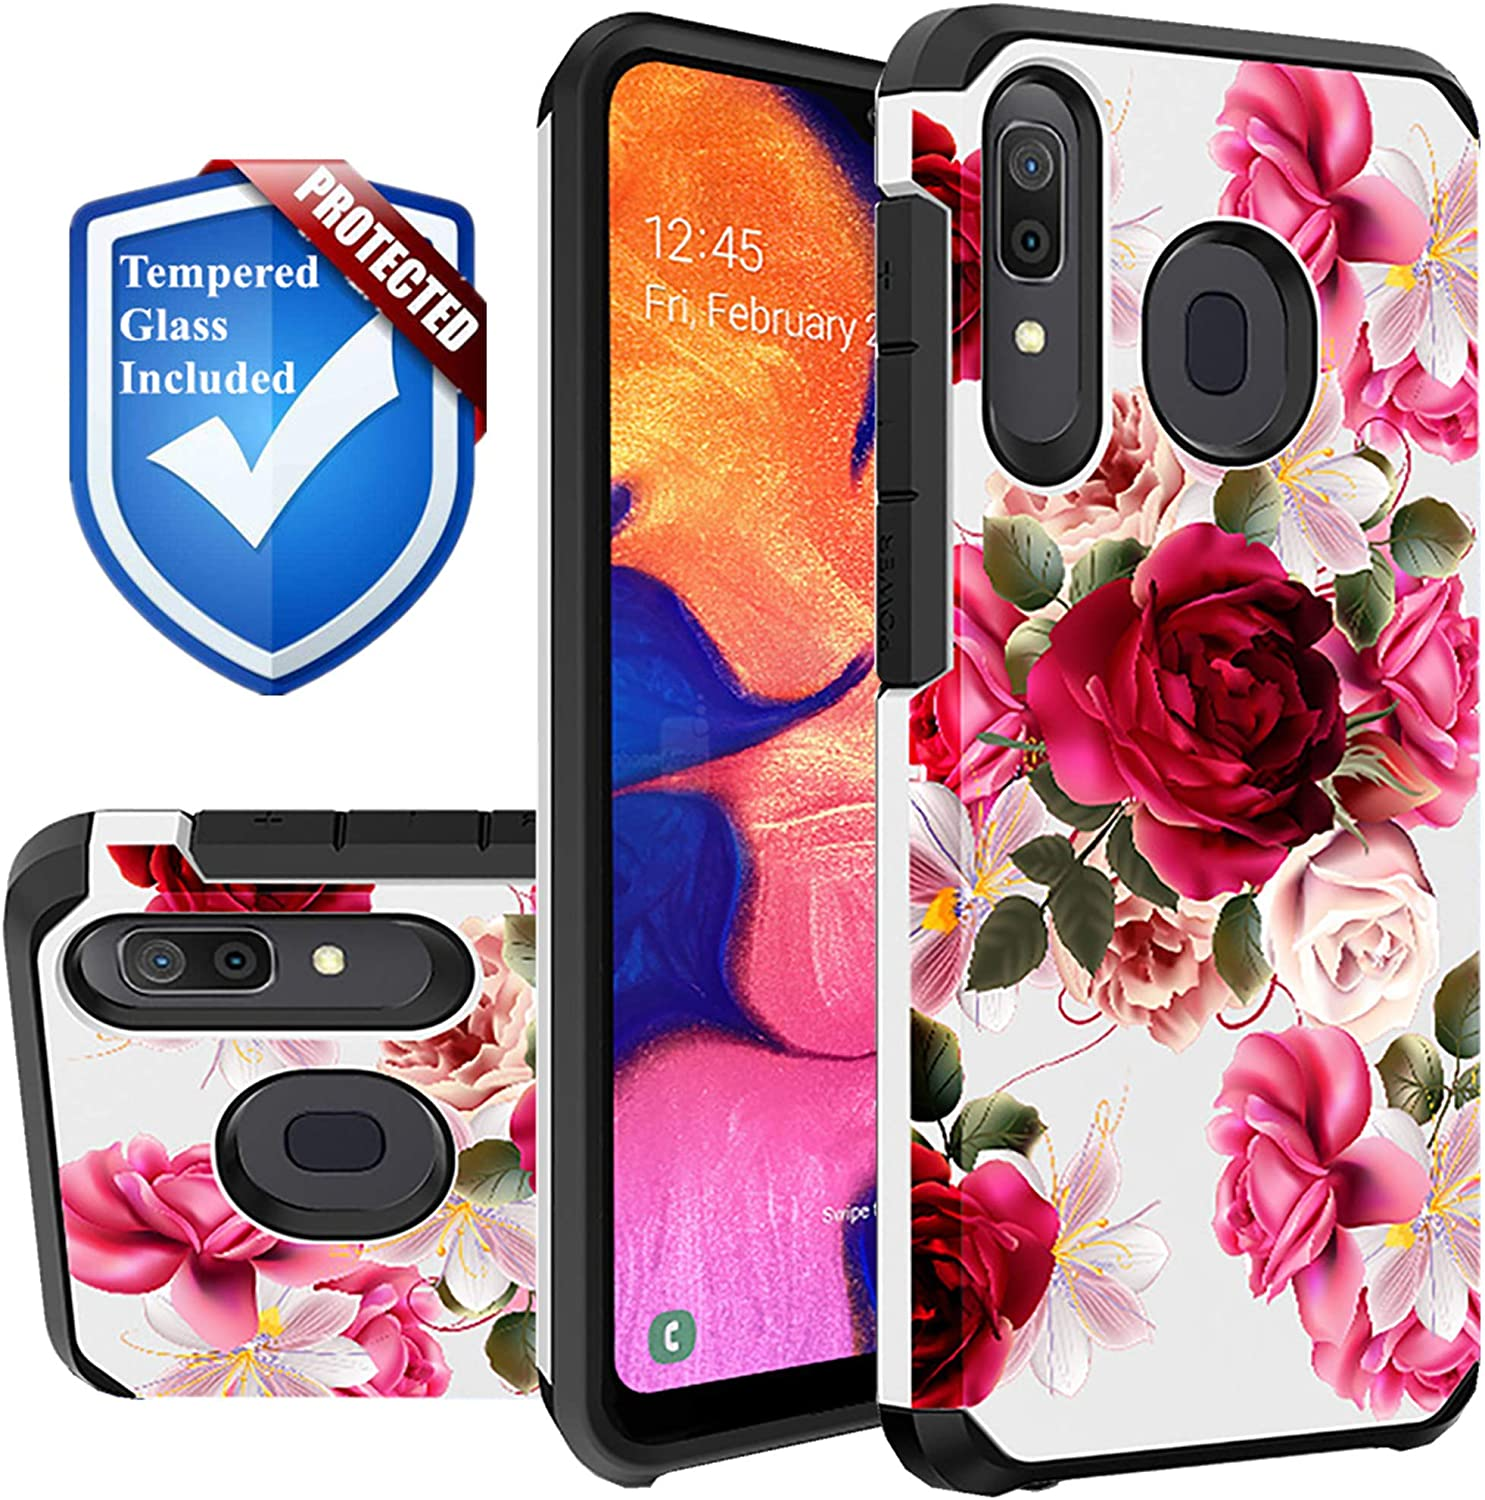 Red Floral Phone Case Compatible for [ Samsung Galaxy A50, Galaxy A30 & Galaxy A20 ] [ Storm Buy ] Shockproof 3D Textured Vibrant Rubber Cover + Screen Protector Tempered Glass